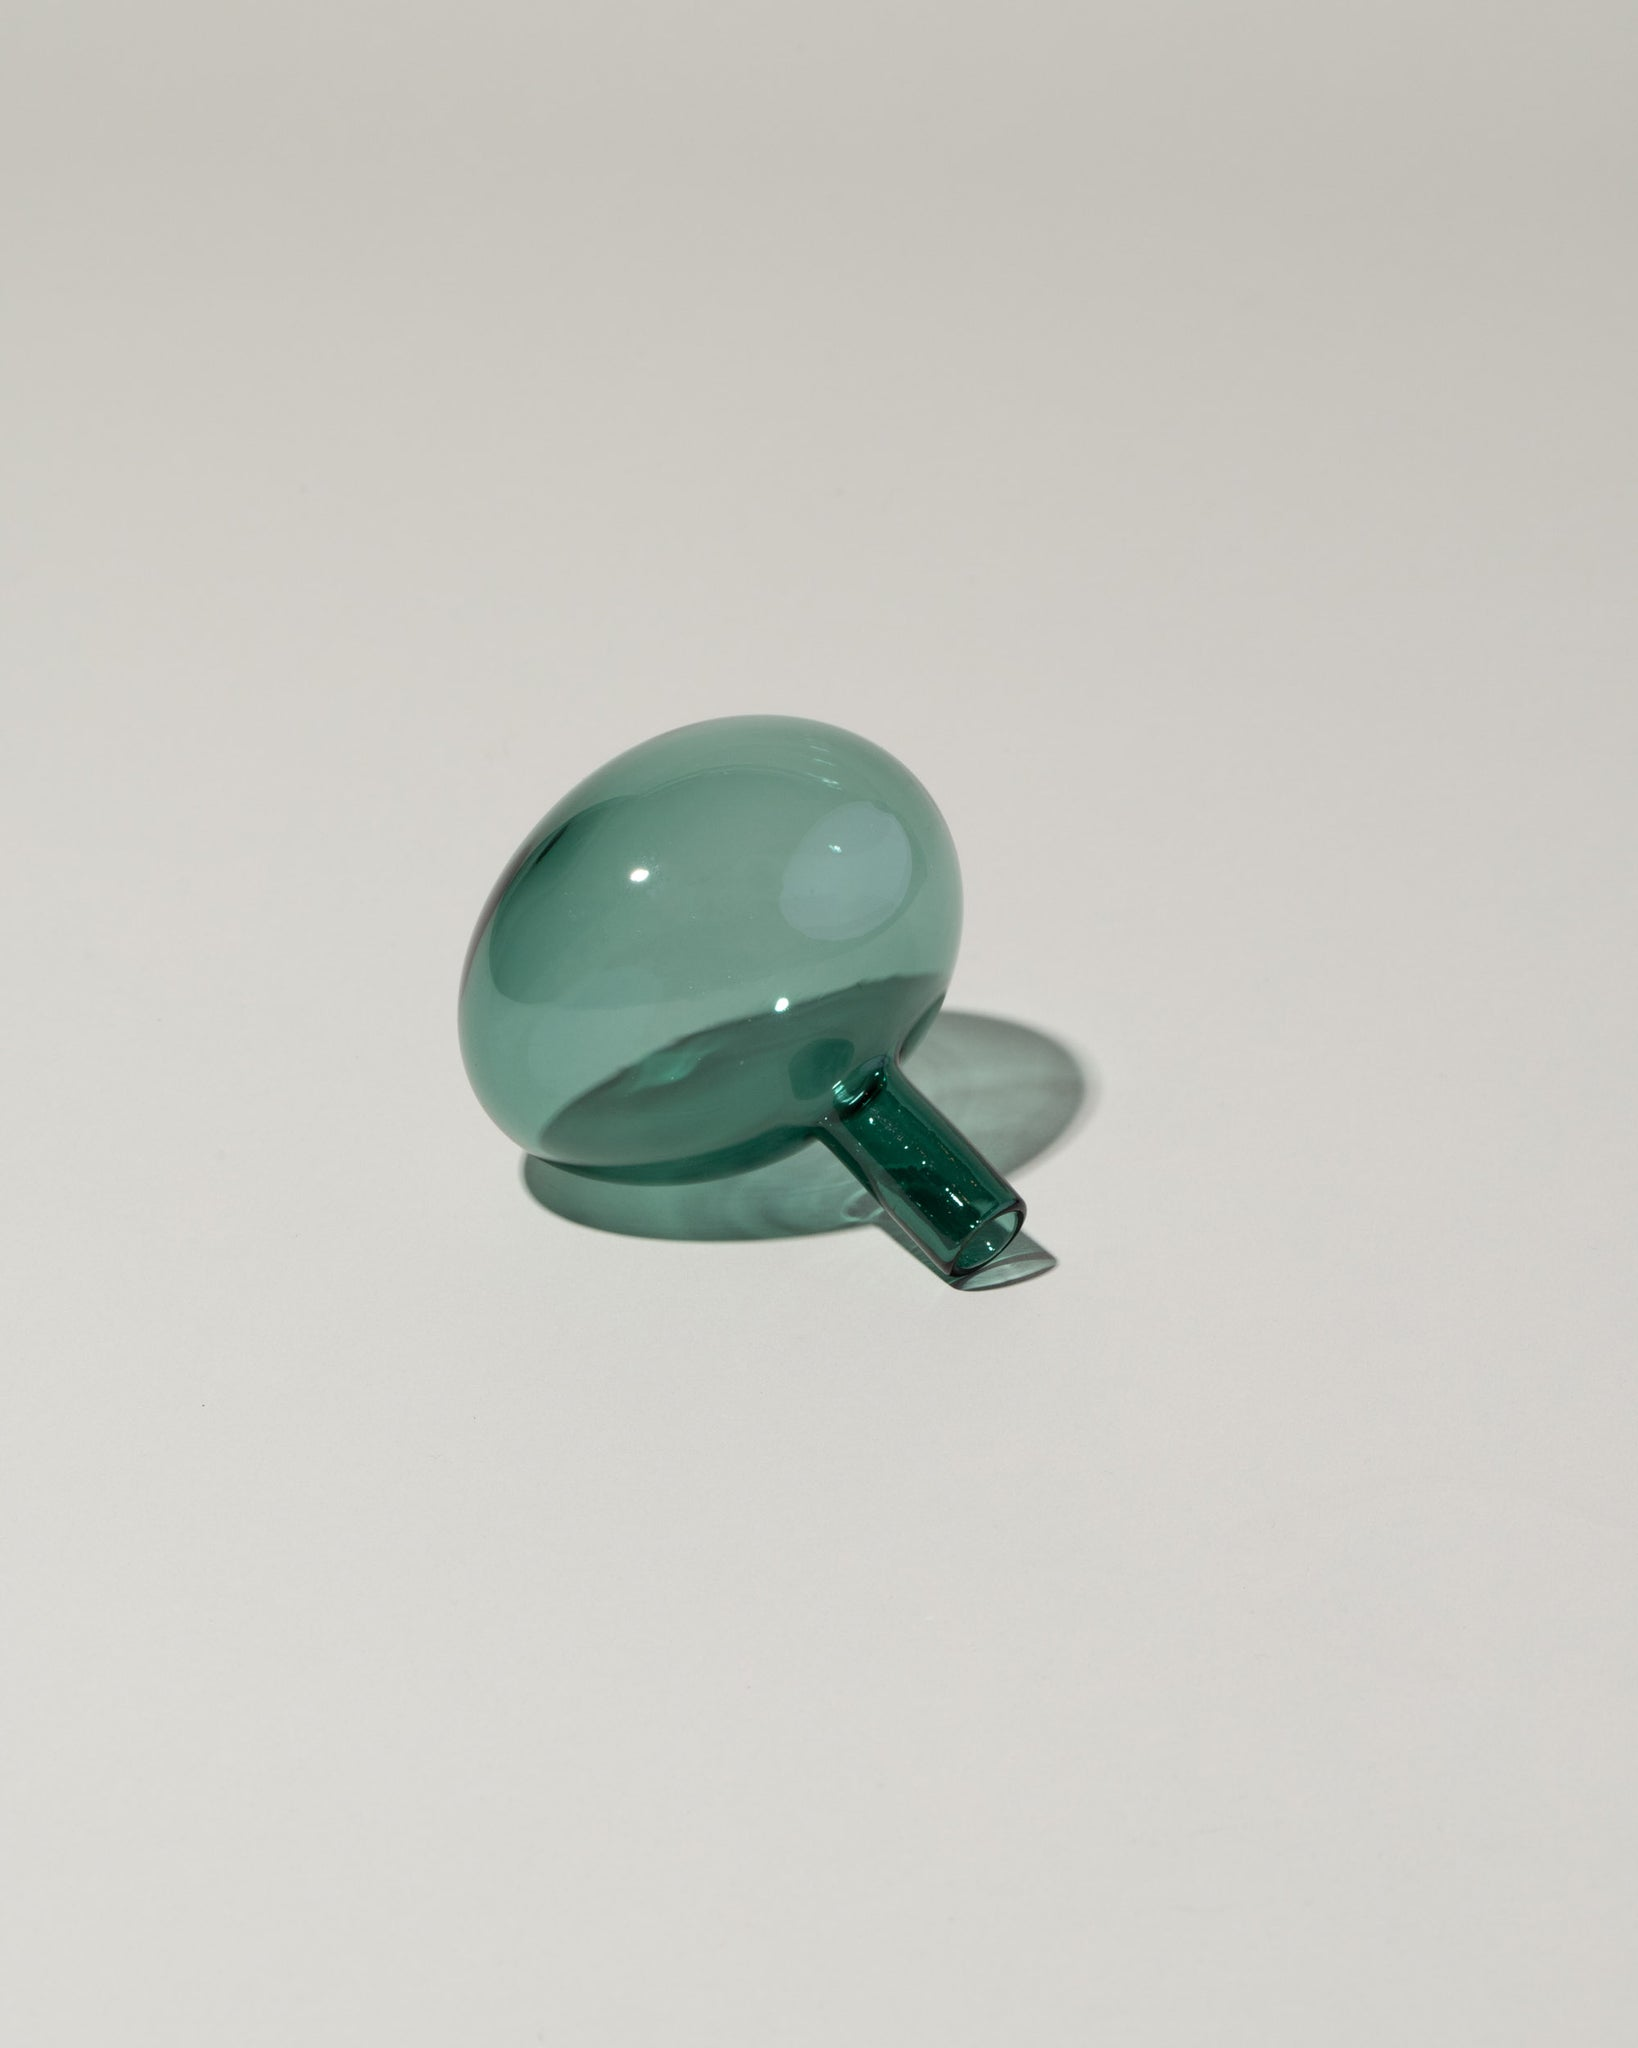 Laurence Brabant Entracte Wine Bottle Stopper Emerald side view